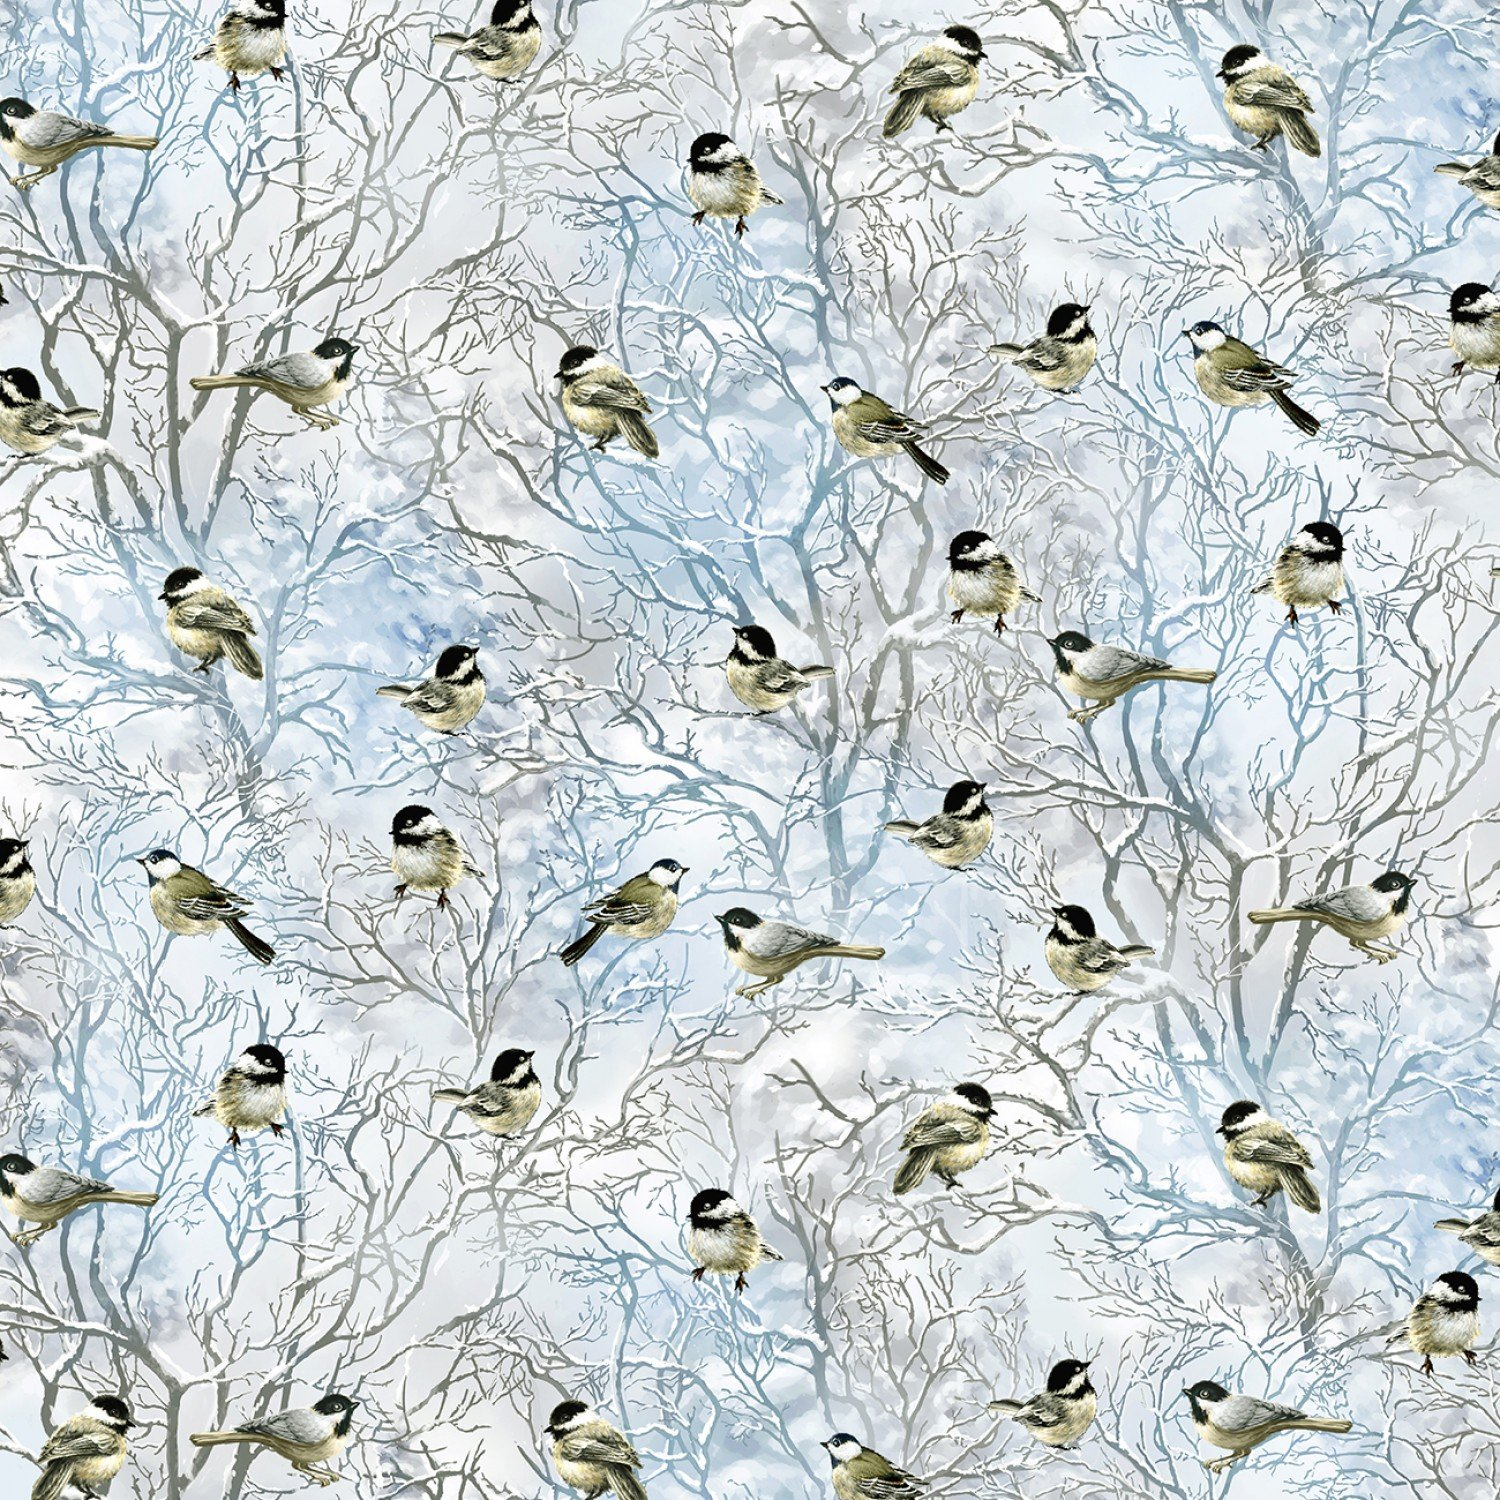 Timeless Treasures Dona C7595 Blue - Black-Capped Chickadee on Snowy Branches